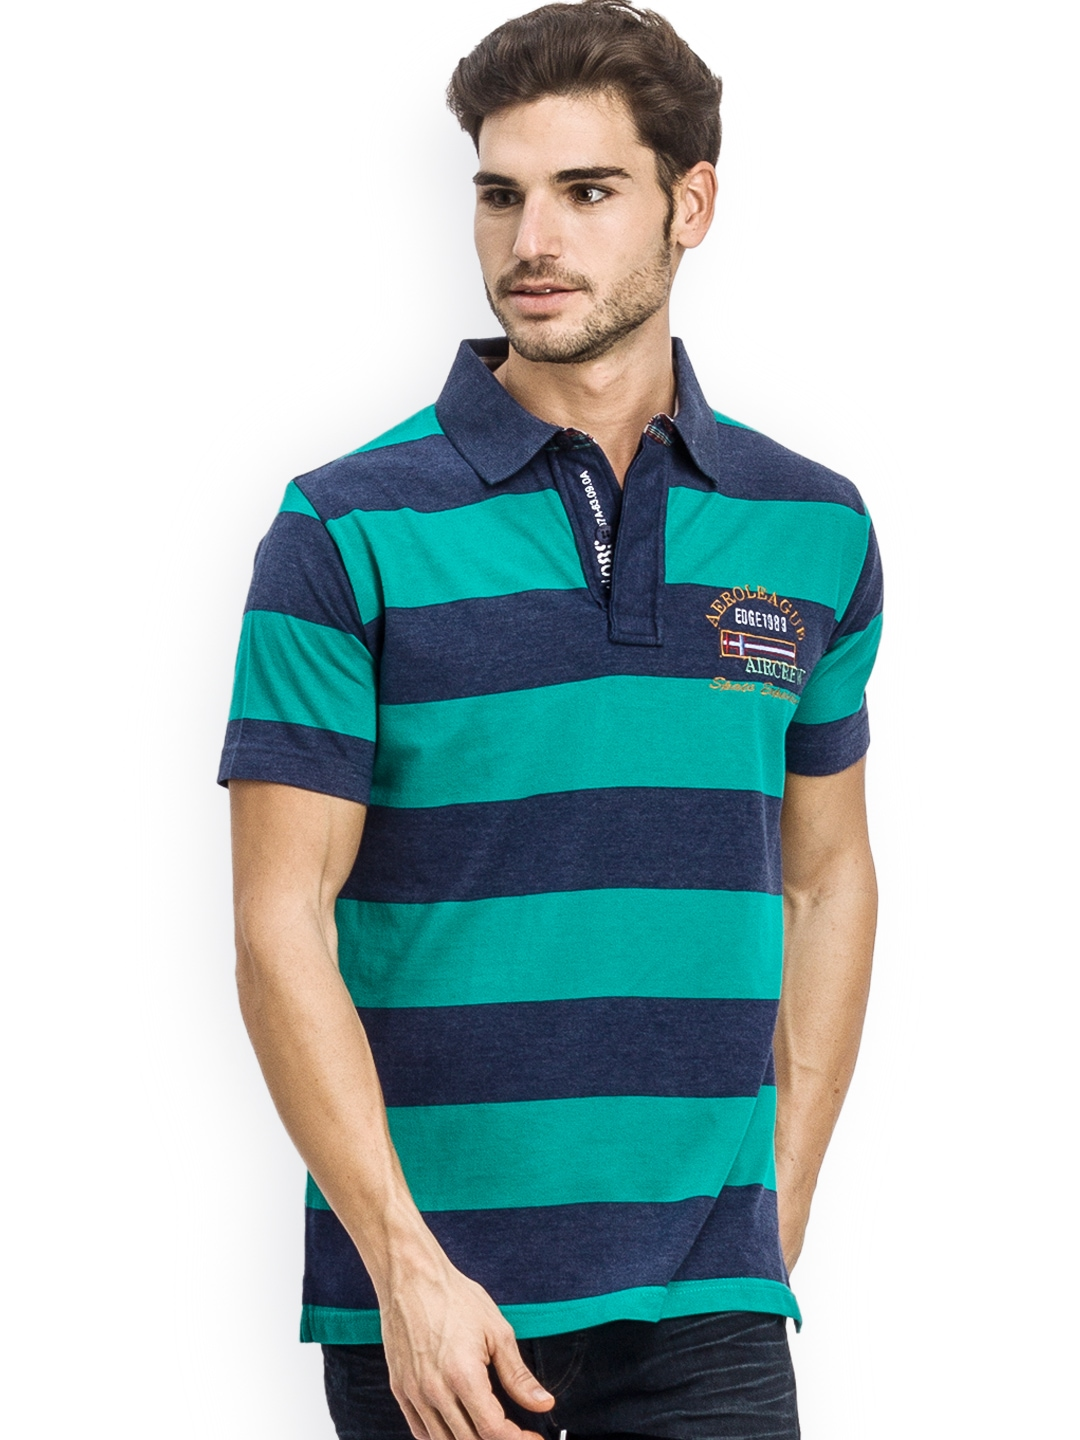 Myntra k mark men teal green navy striped polo t shirt for Mens teal polo shirt